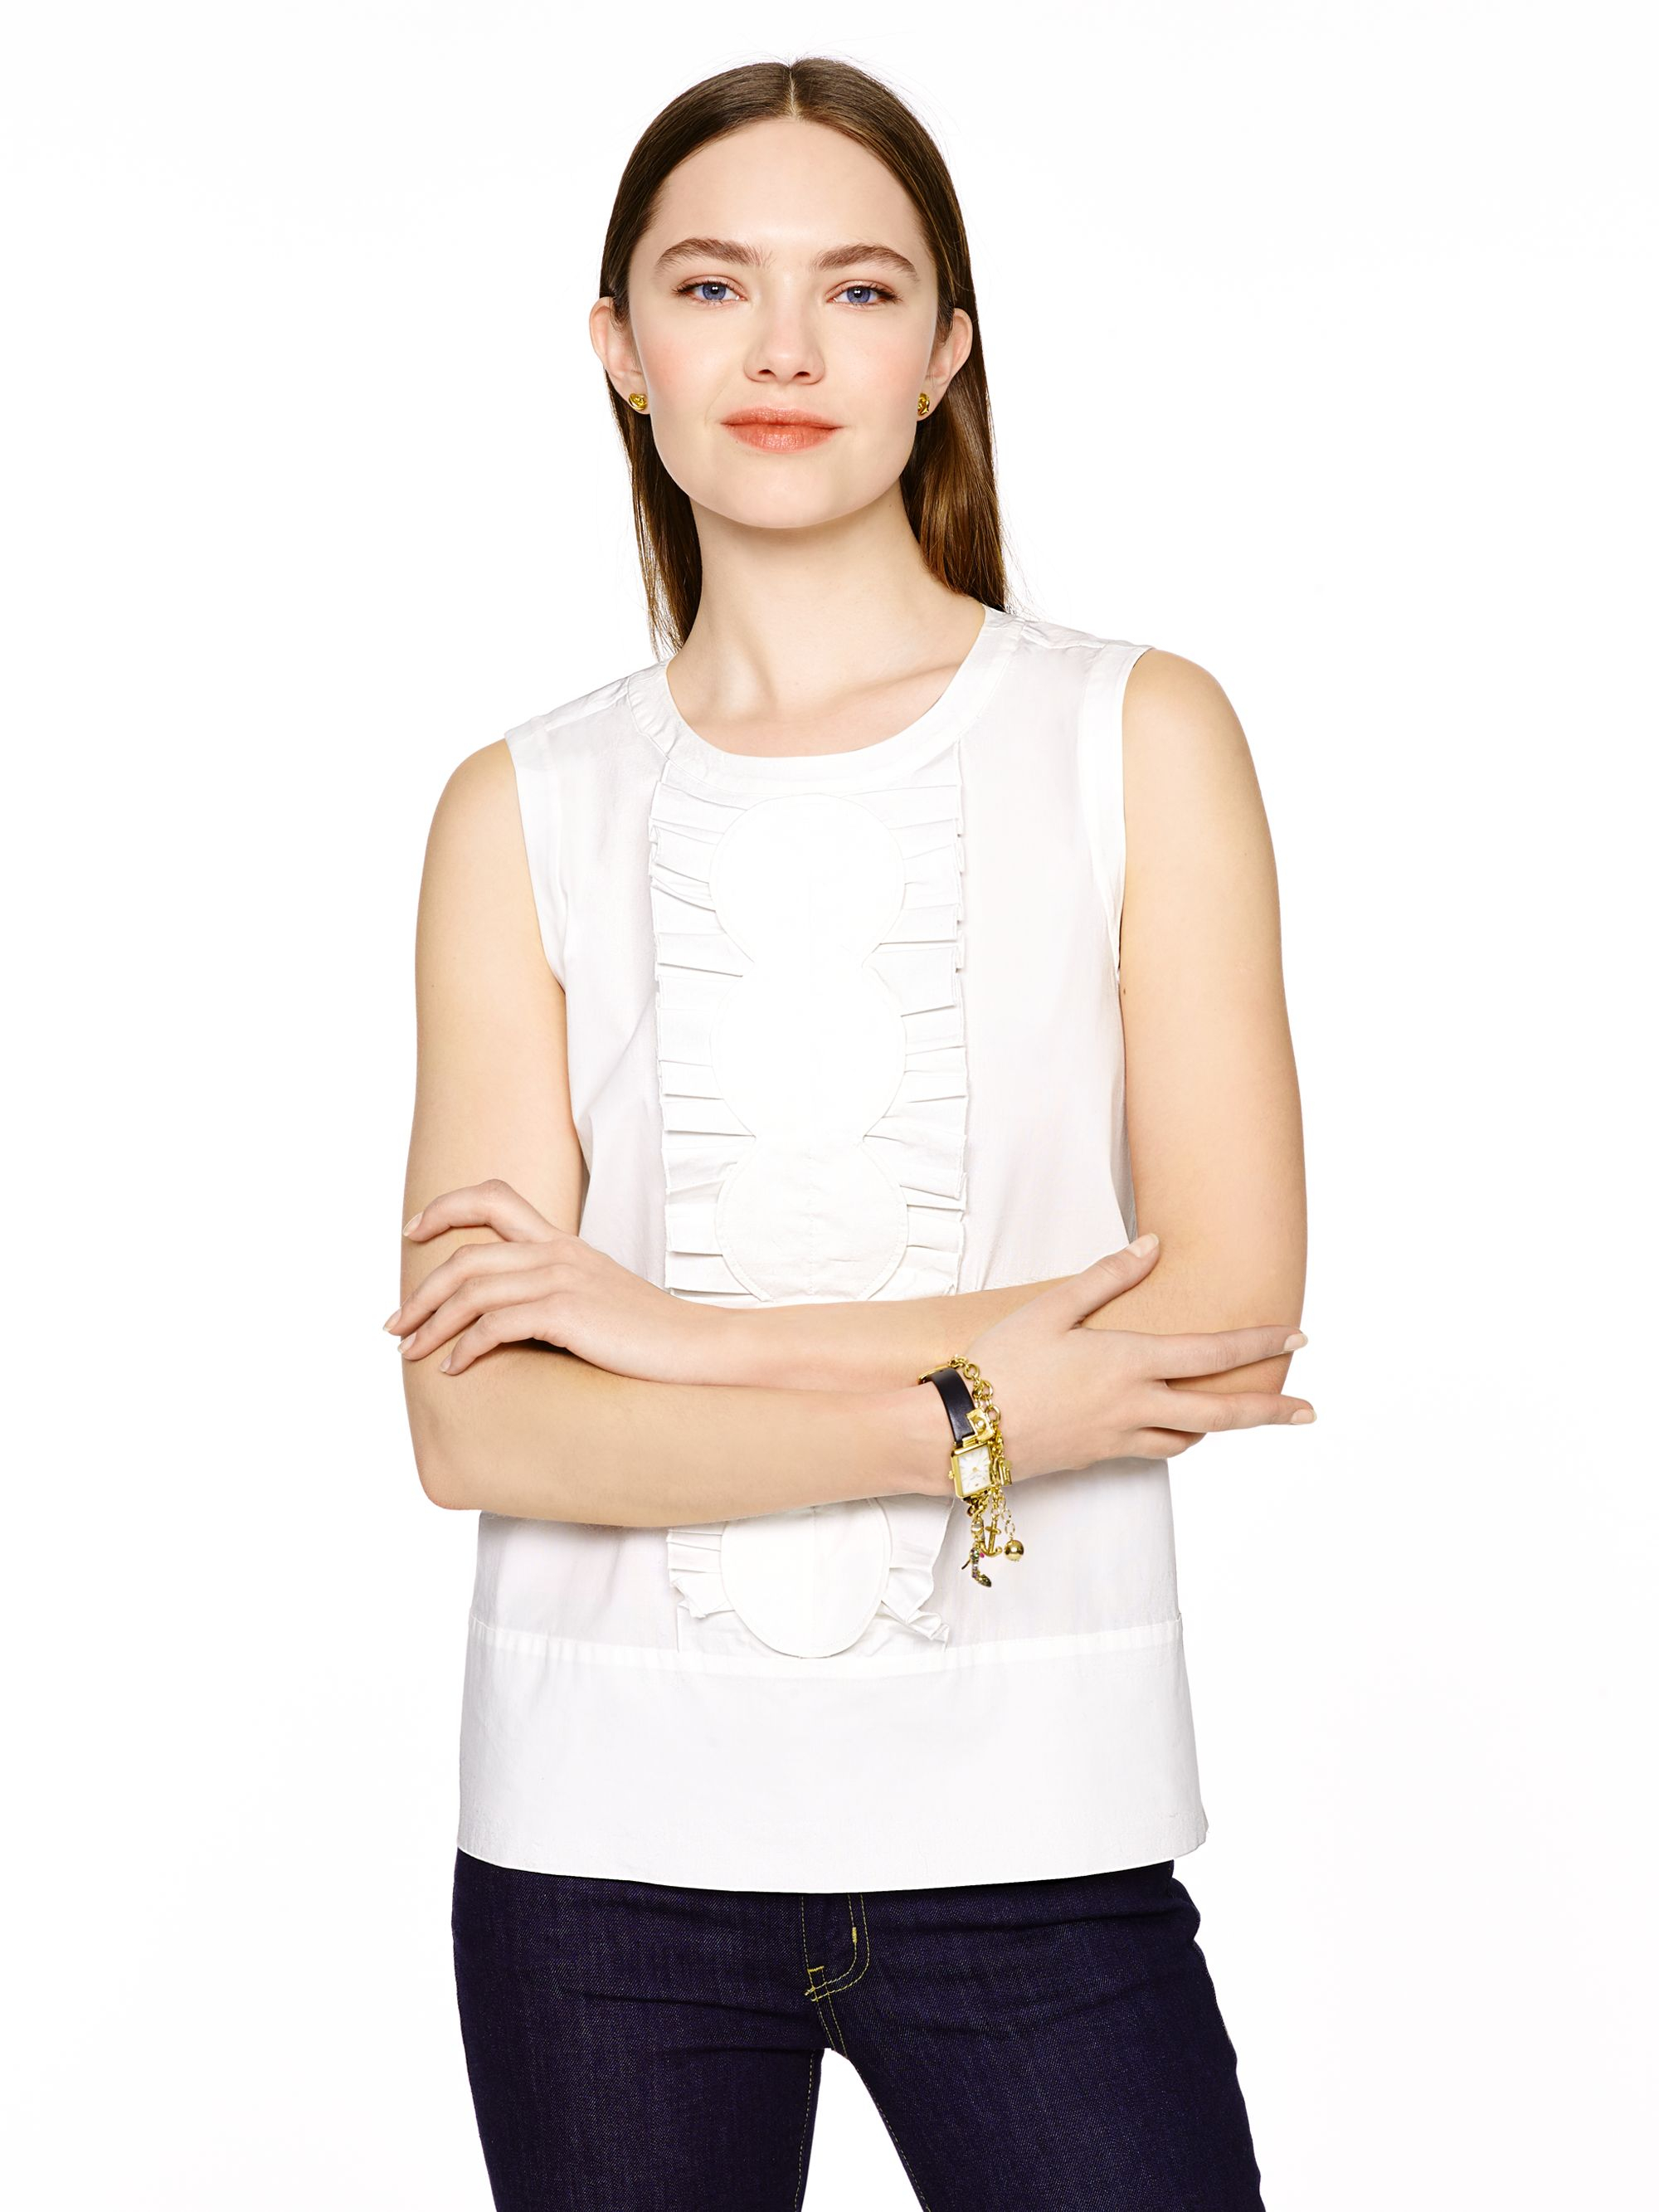 Kate Spade New York Sleeveless Knit Top Buy Cheap Fashionable Best Prices Sale Online Free Shipping Excellent Hyper Online Discount Authentic Online 7NbMJ